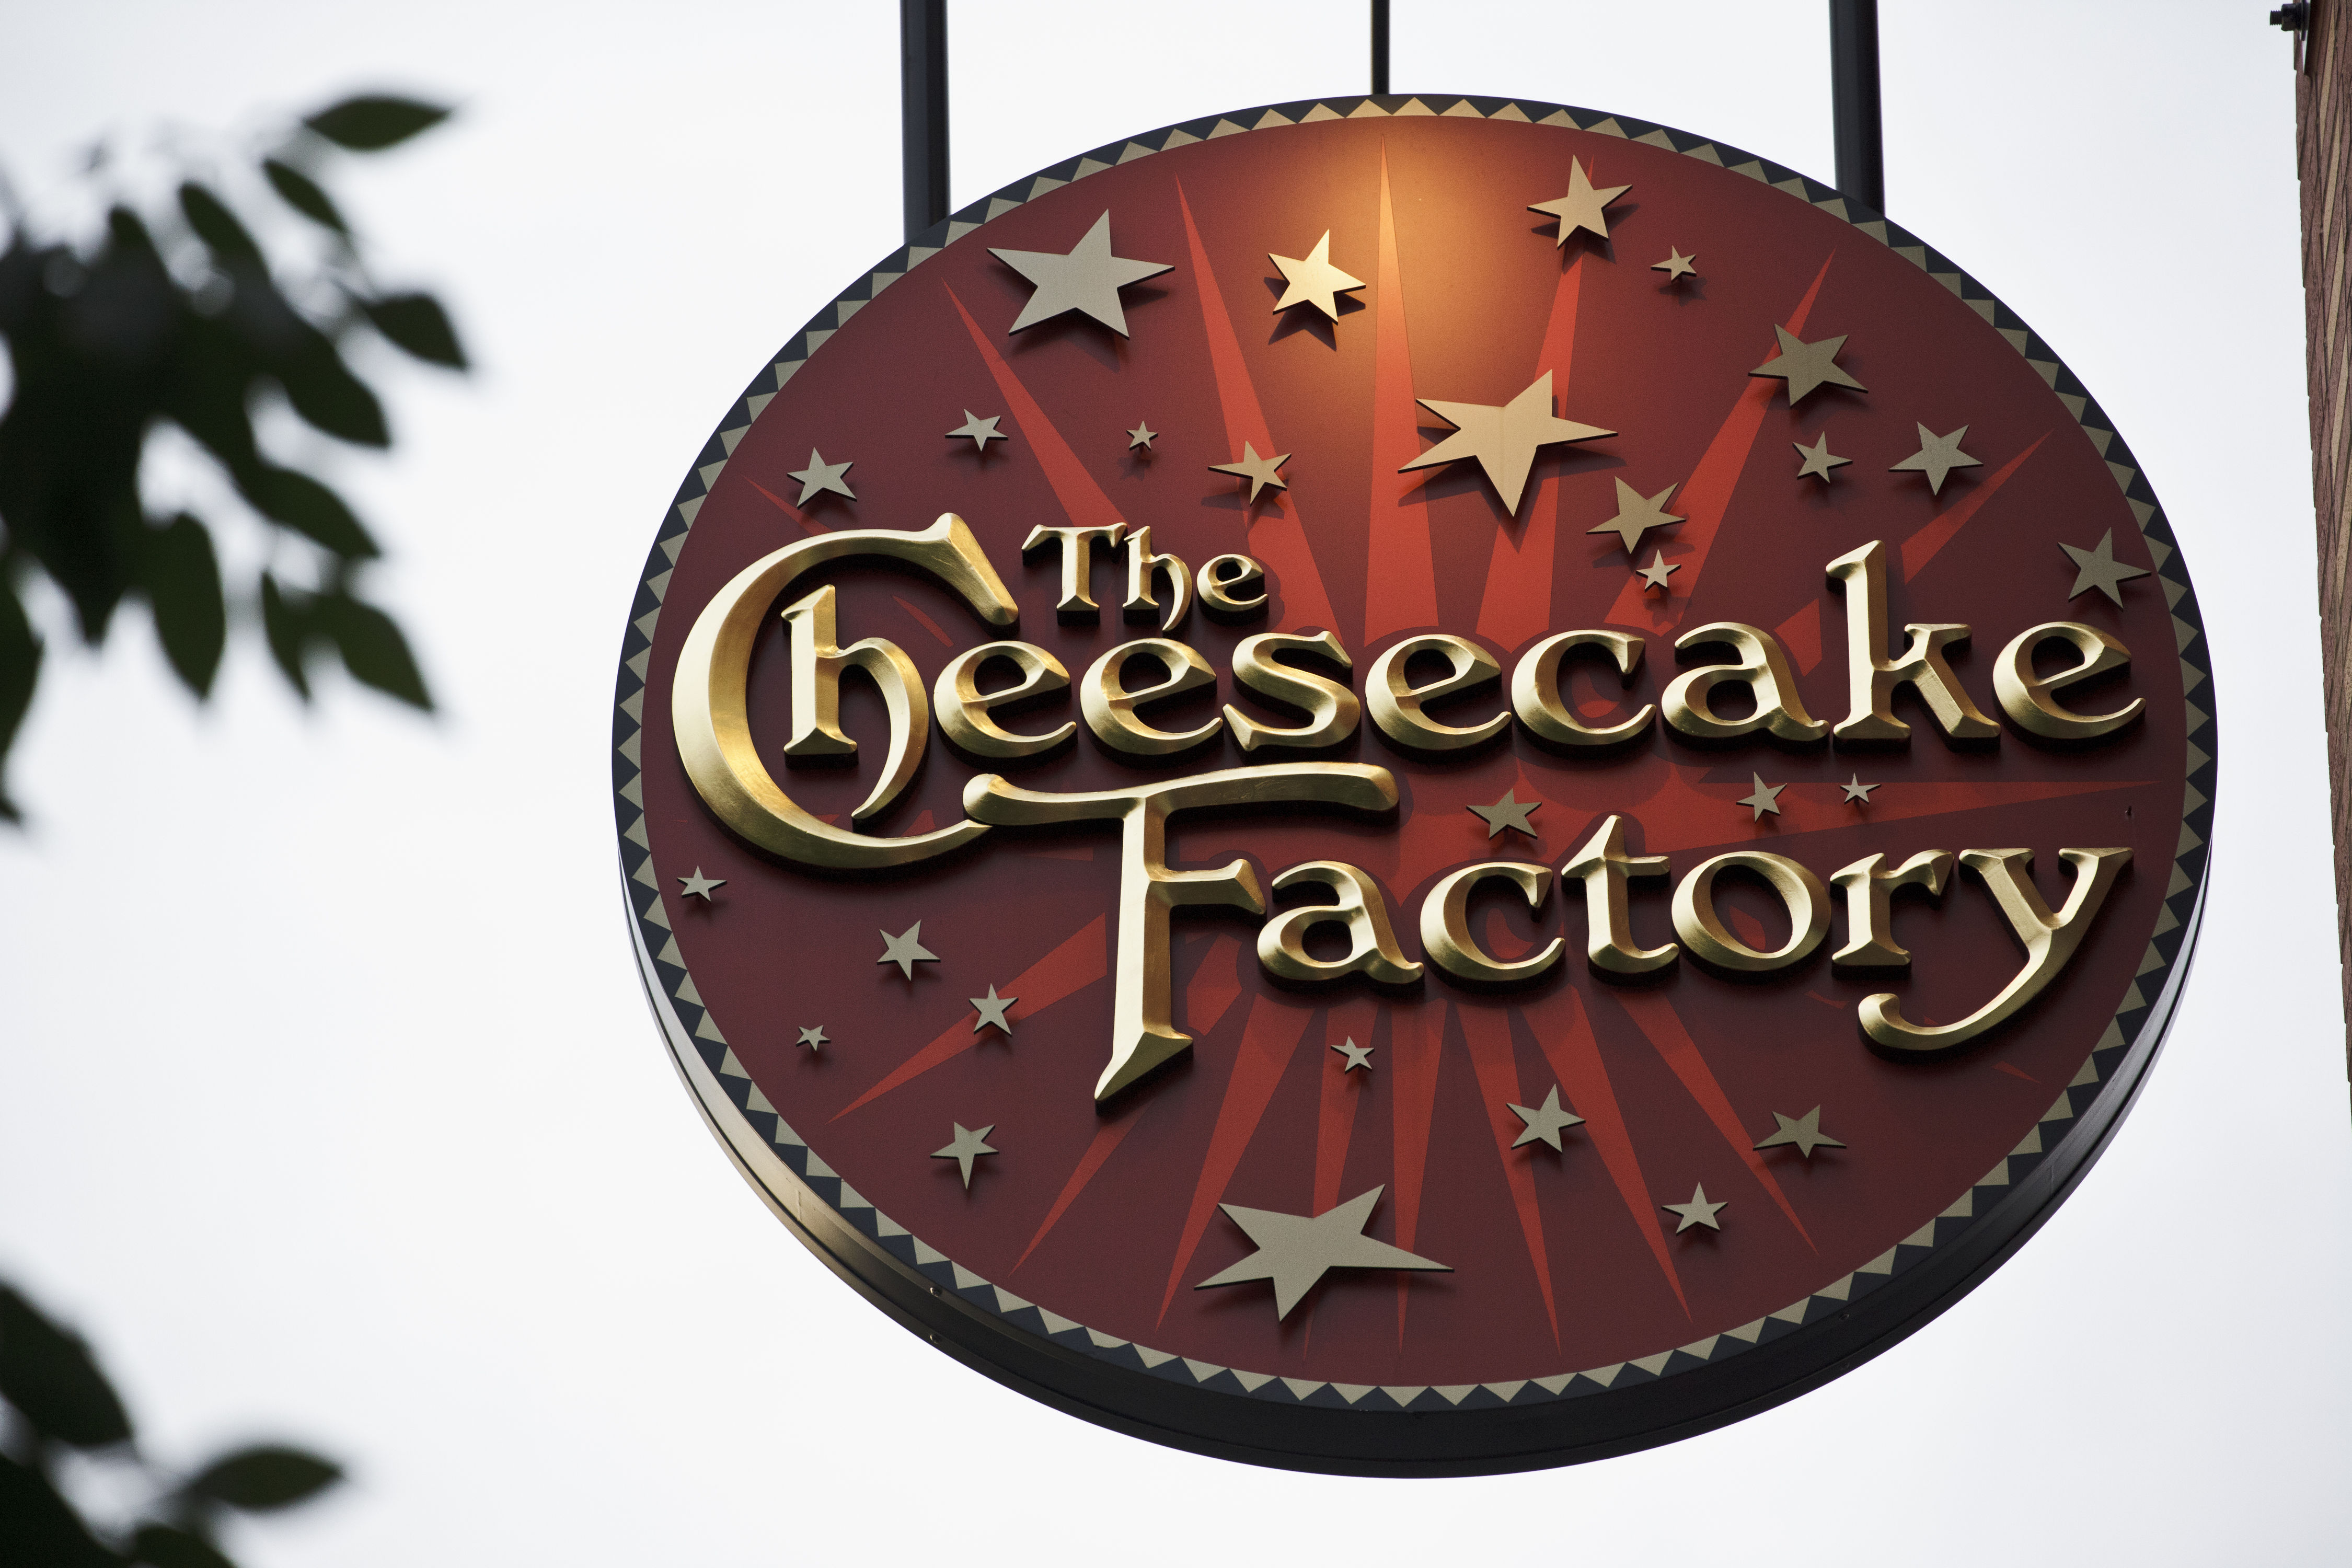 5 Things You Didn't Know about The Cheesecake Factory